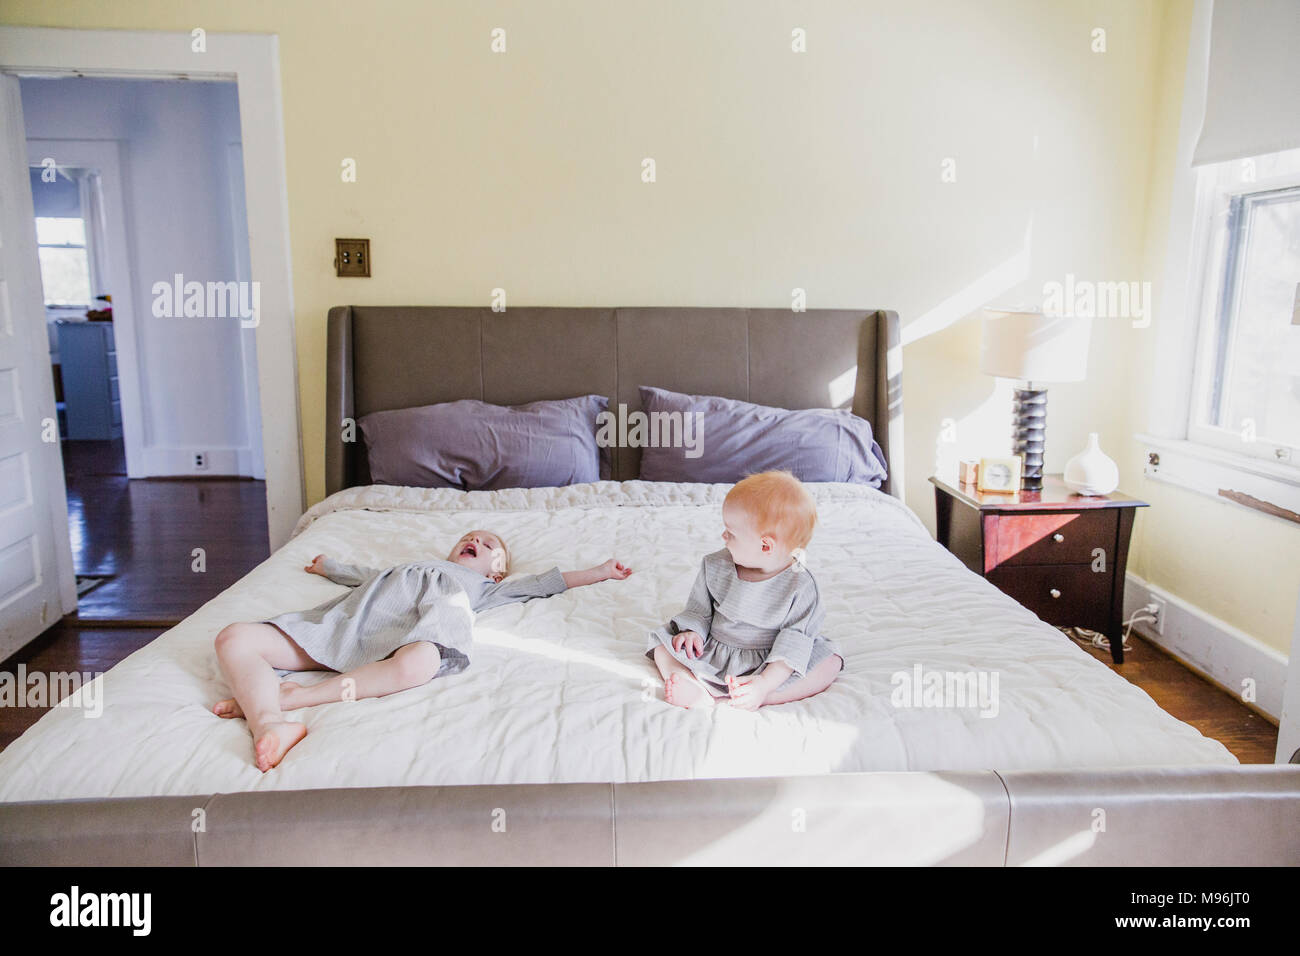 Girl and baby playing on bed - Stock Image